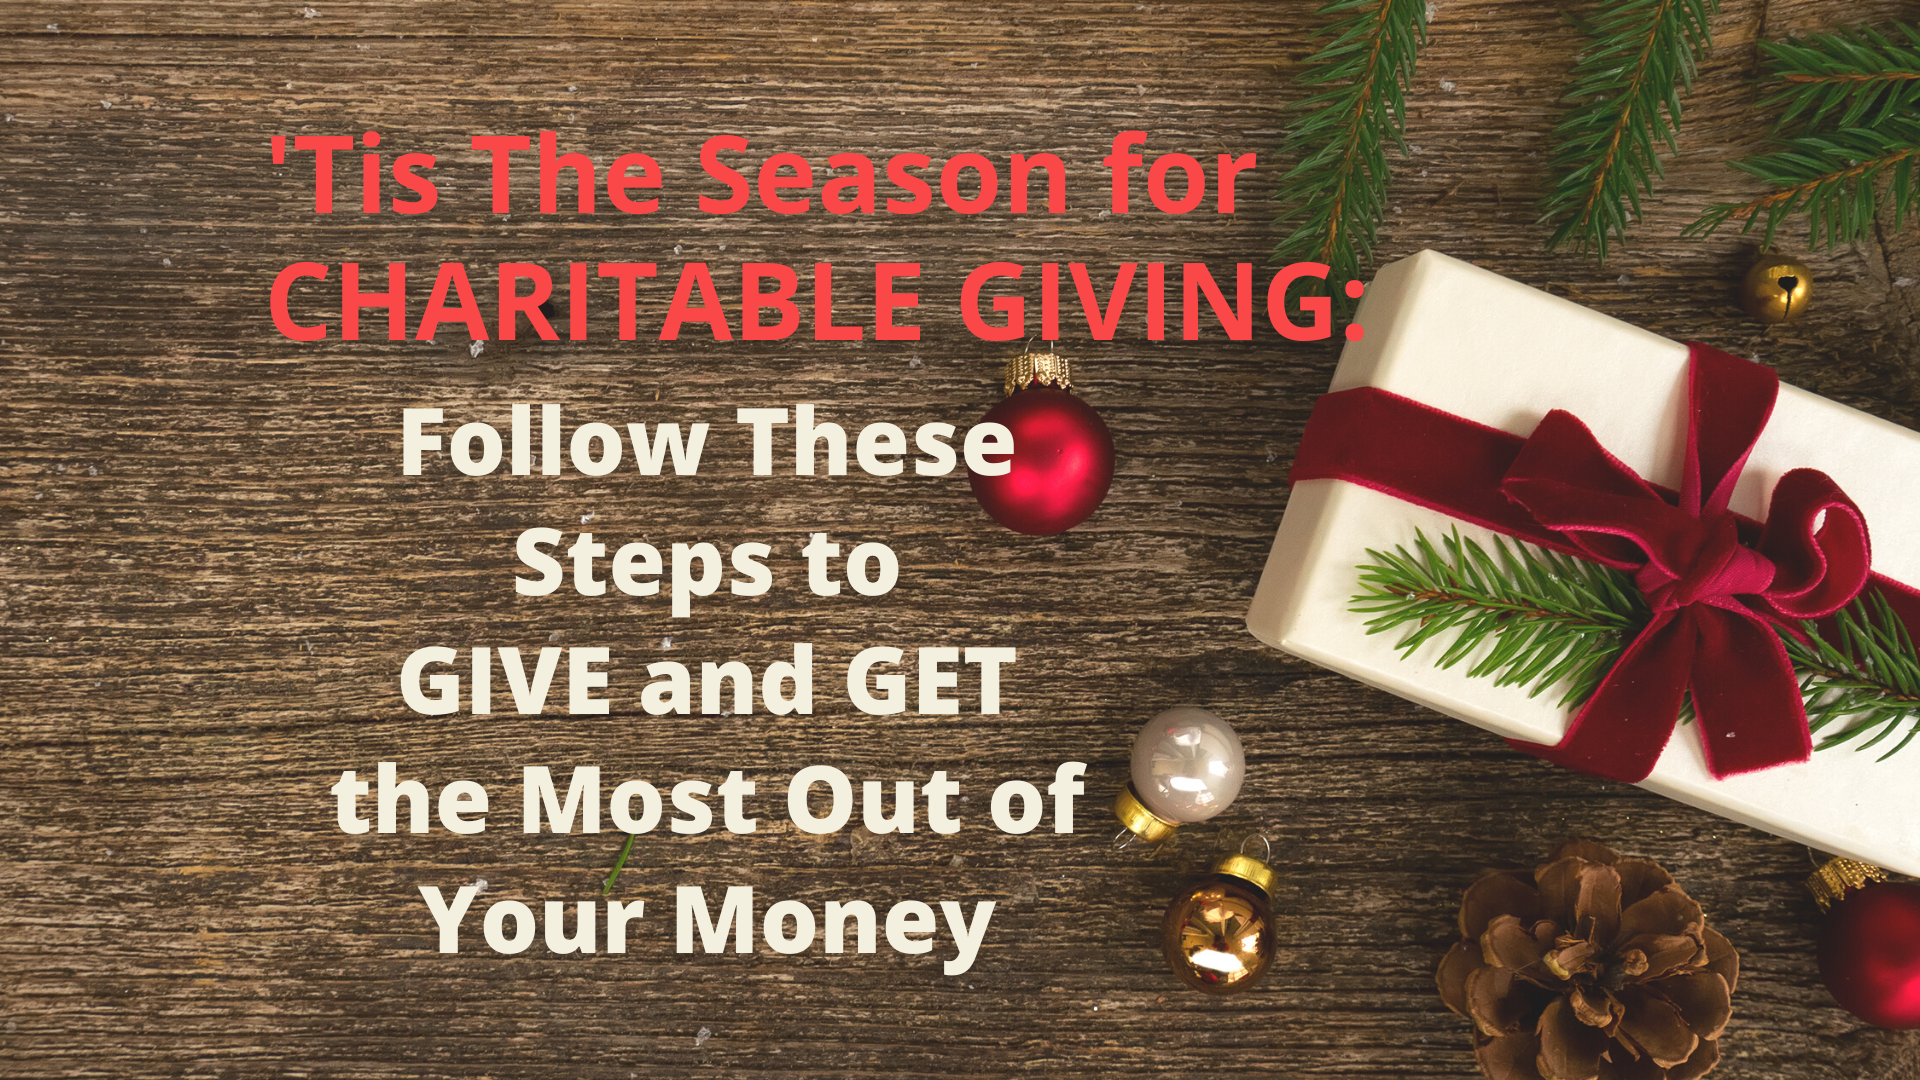 Giving: How To Do The Most Good Without Disrupting Your Financial Plan